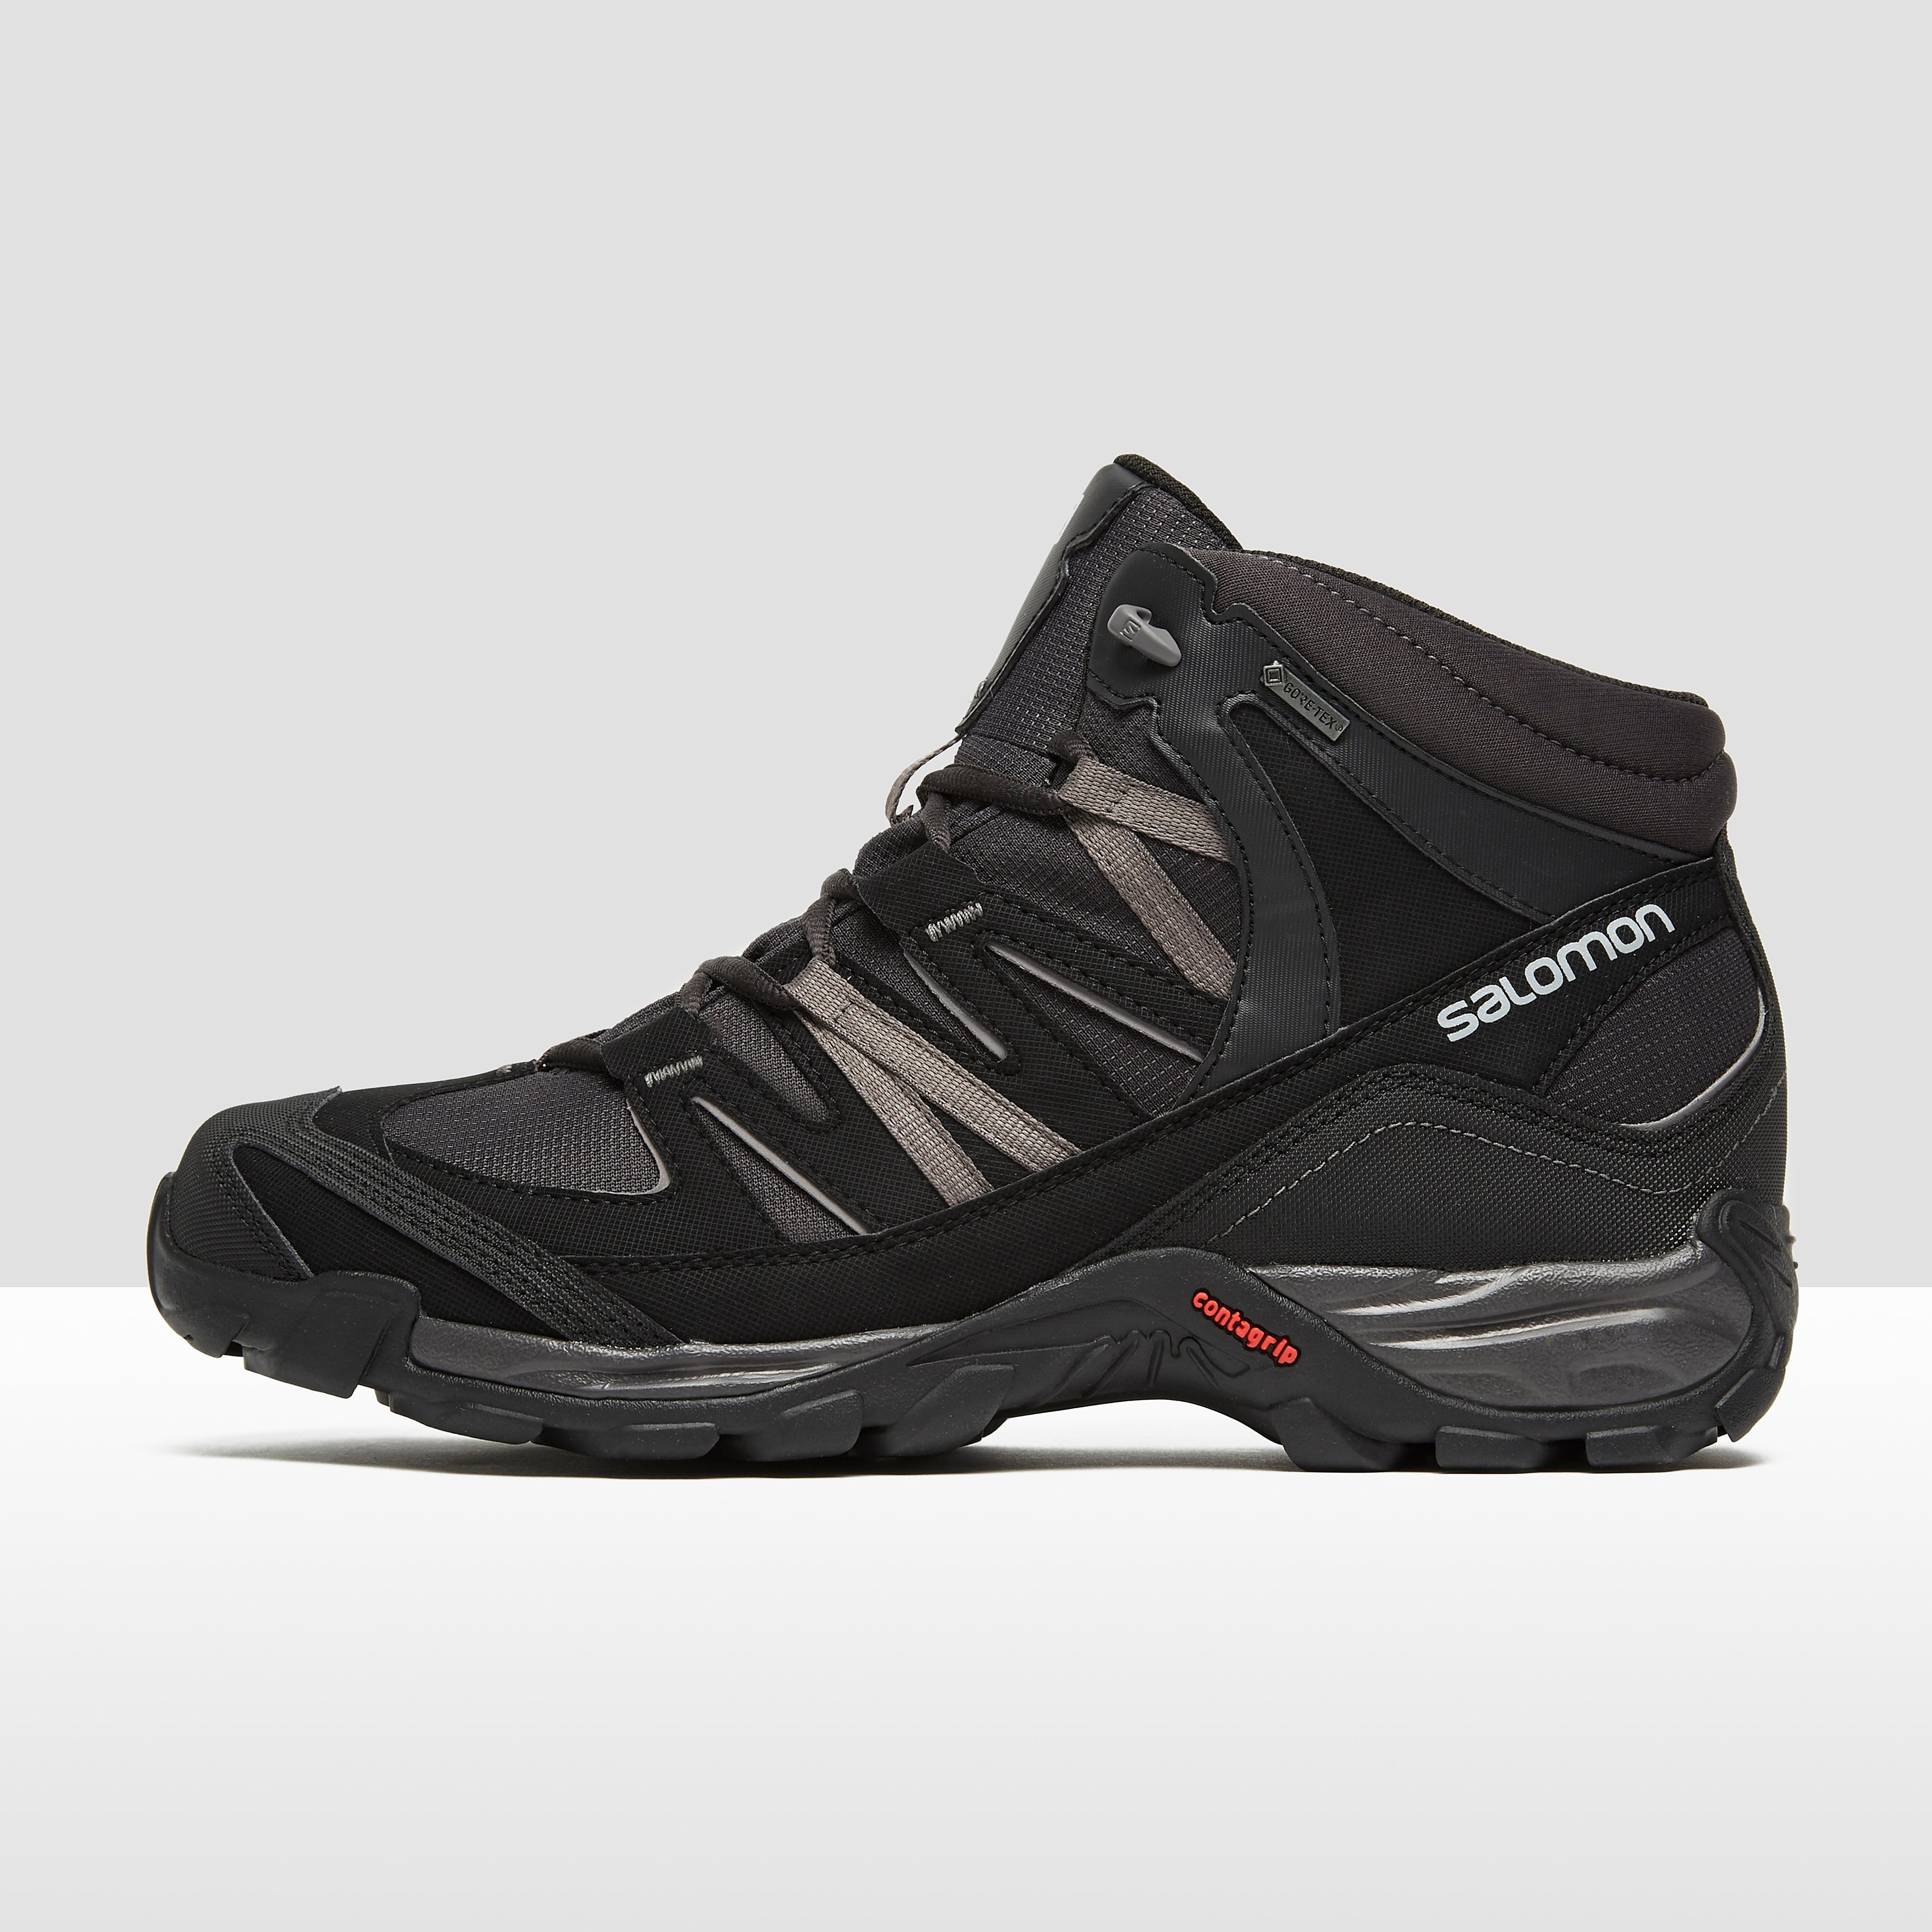 Salomon Mudstone Hiking Boot